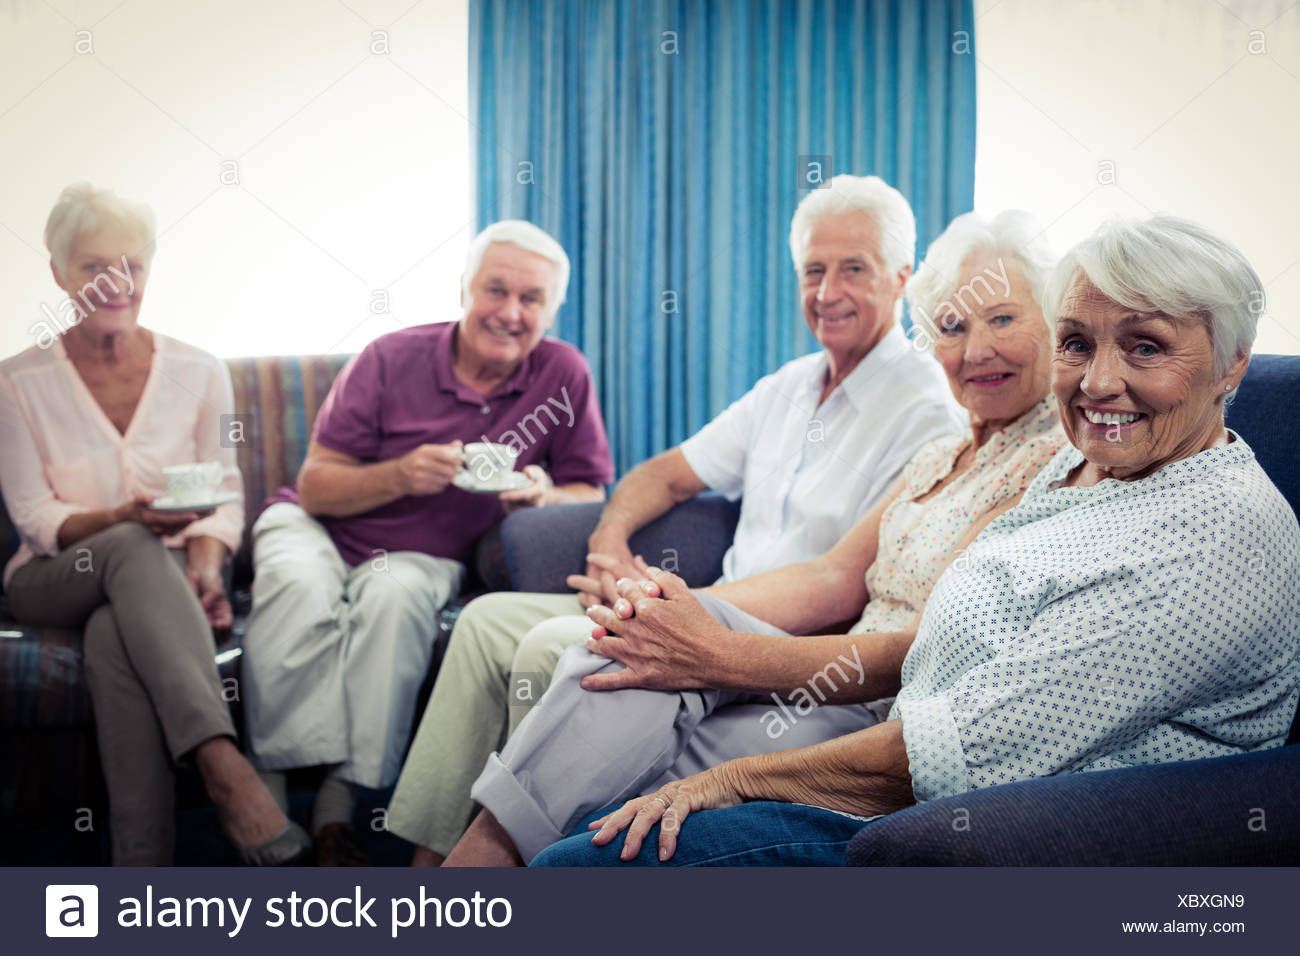 Portrait of a group of seniors - Stock Image